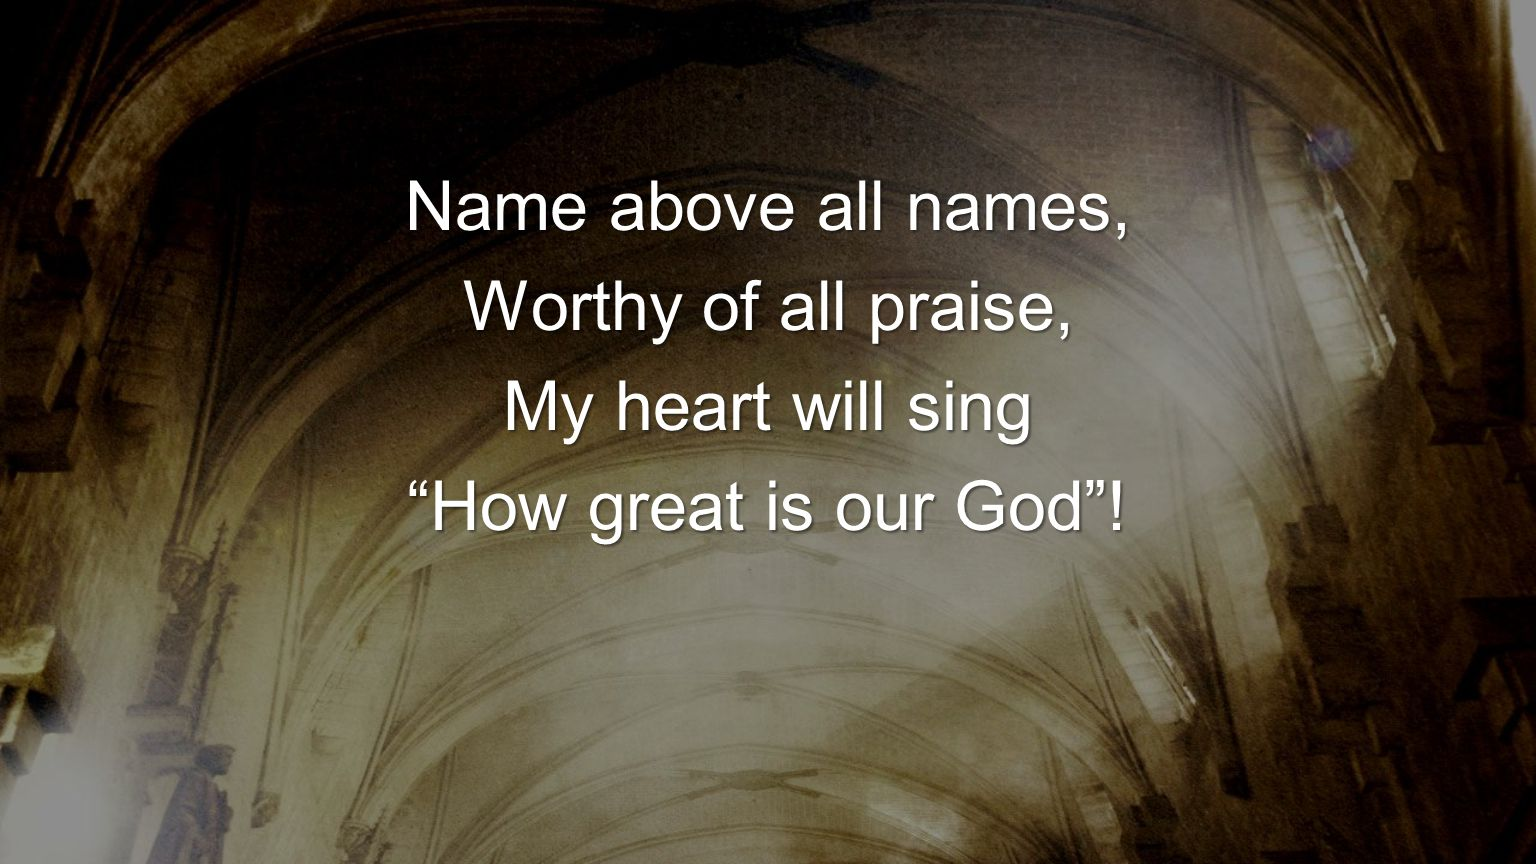 "Name above all names, Worthy of all praise, My heart will sing ""How great is our God""!"